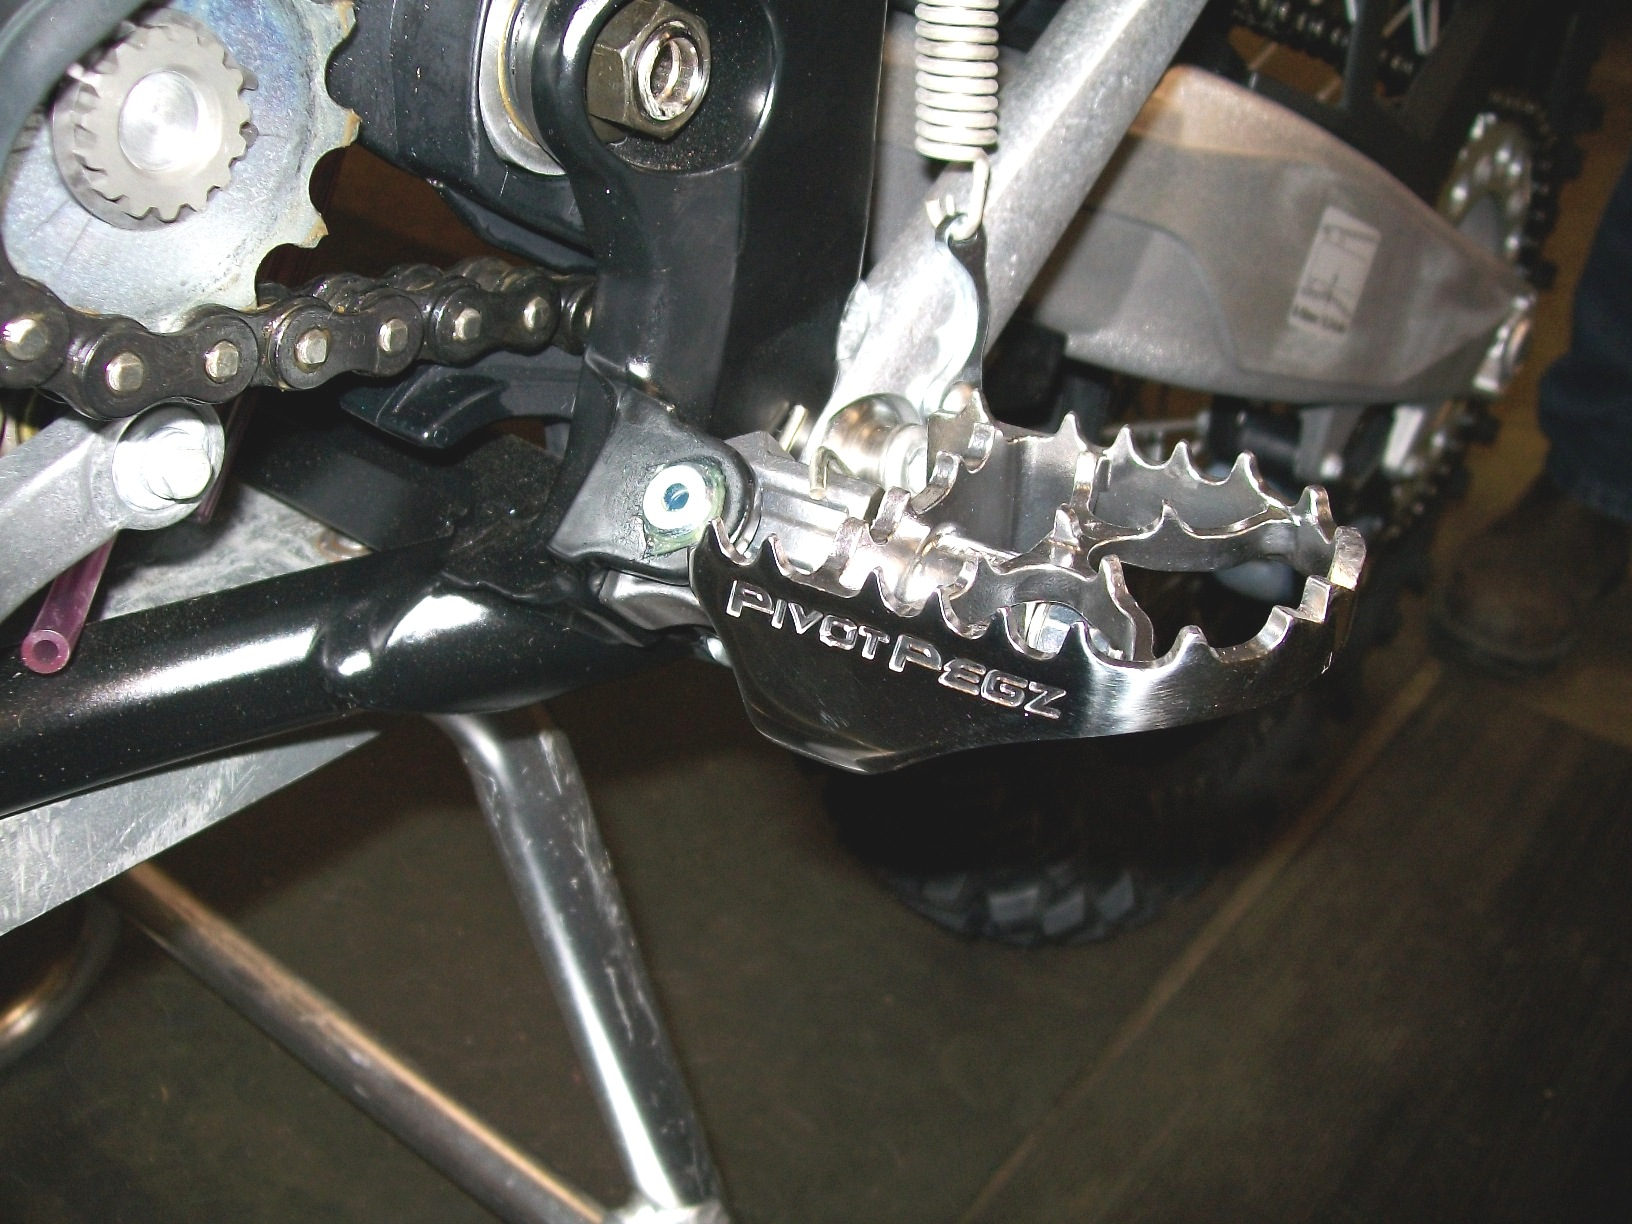 New KTM 450 EXC fitted with MK3 Pivot Pegz